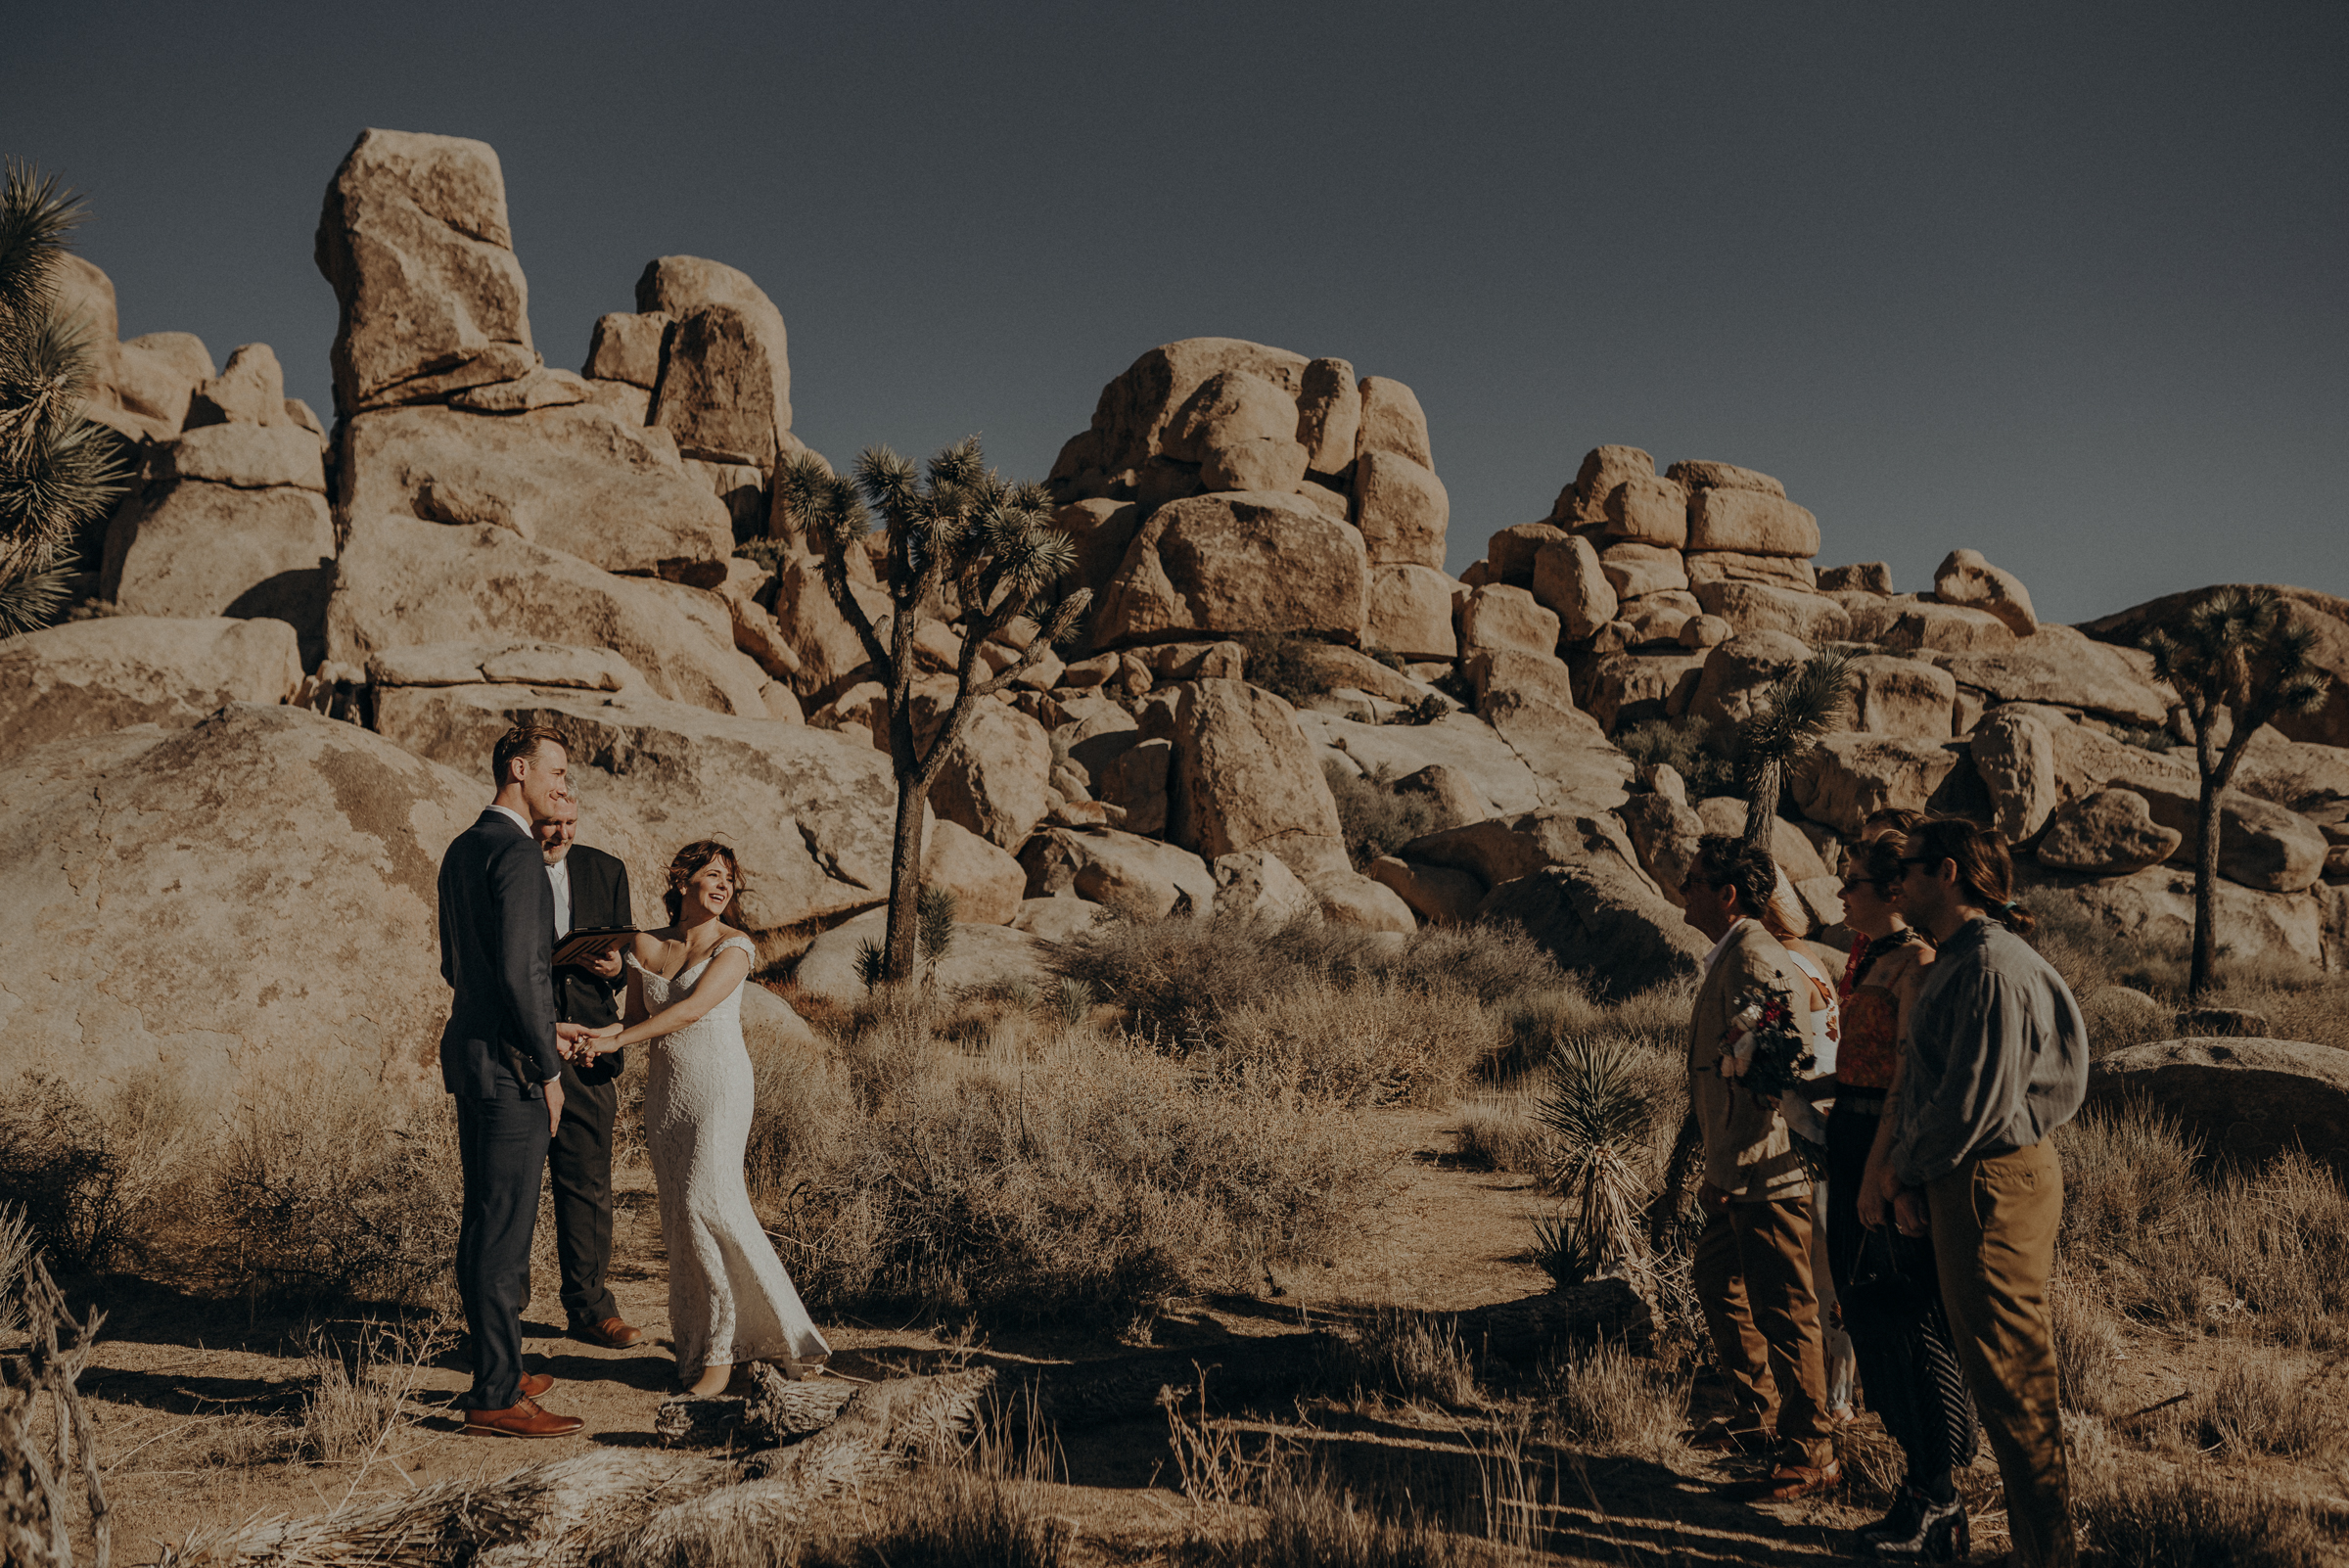 Joshua Tree Elopement - Los Angeles Wedding Photographers - IsaiahAndTaylor.com-030.jpg